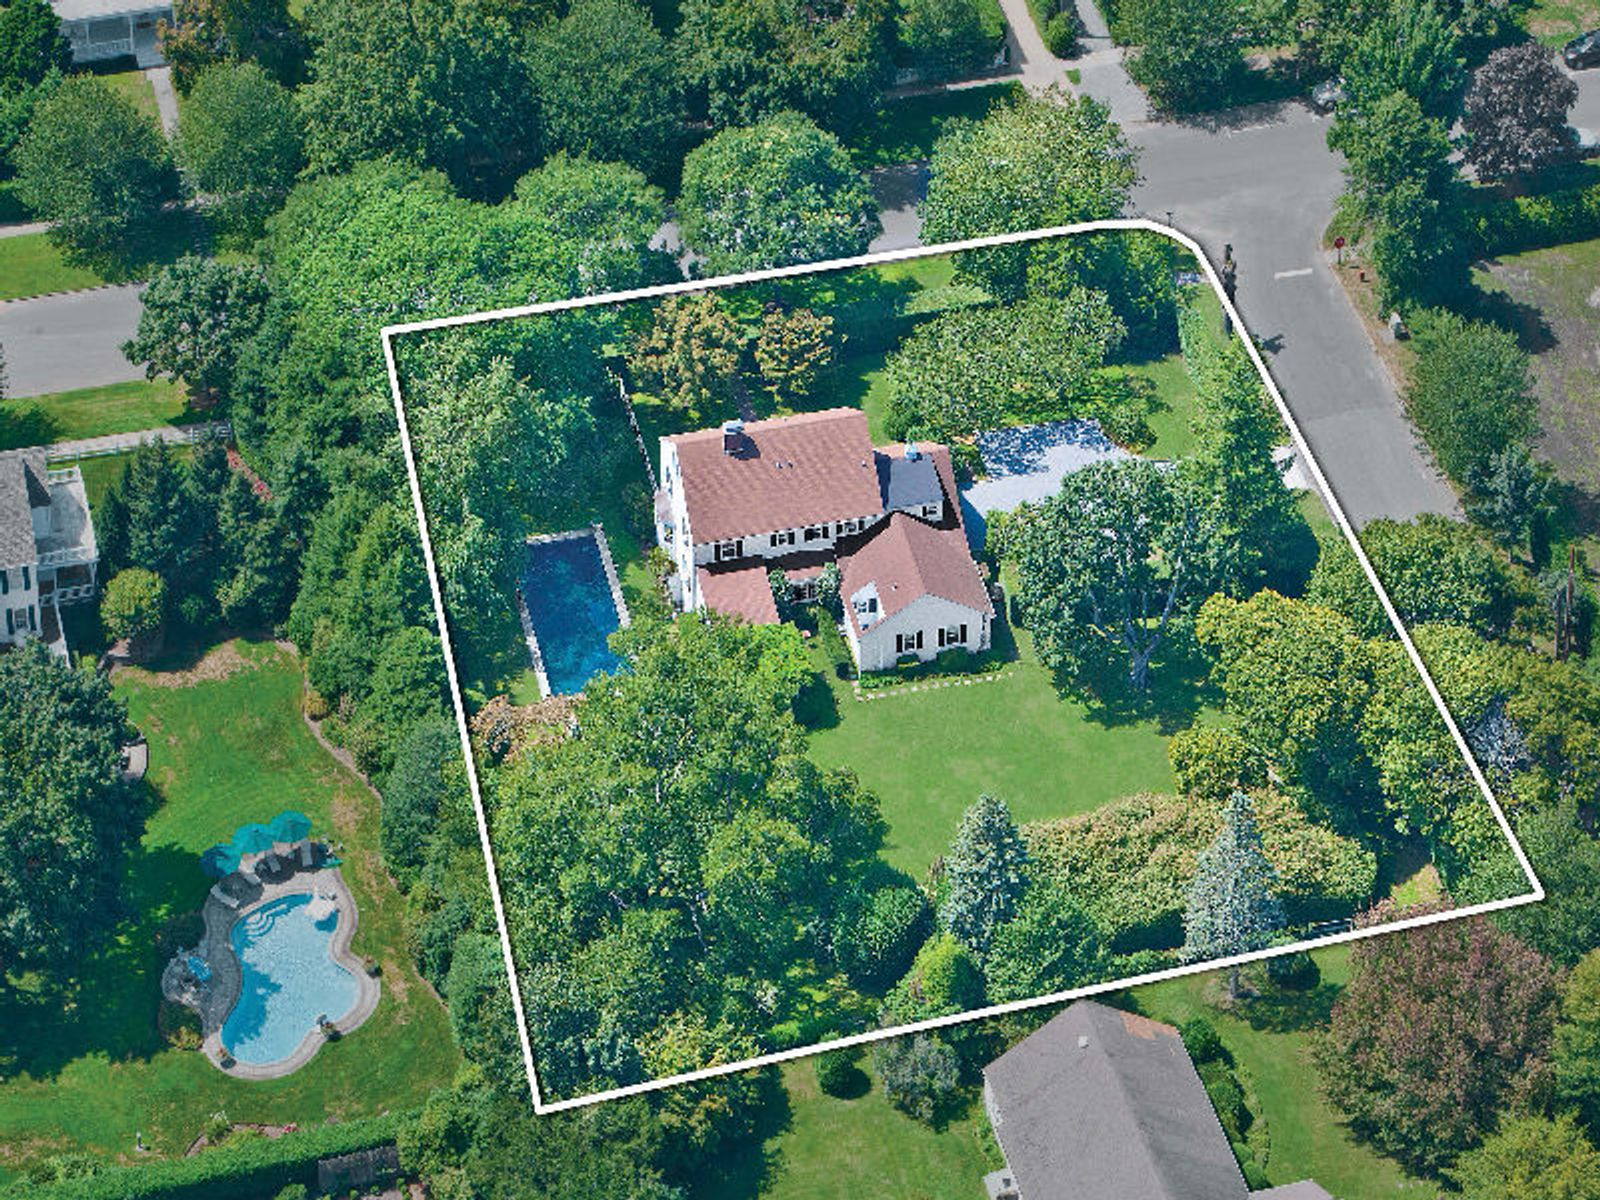 South Main St - Prime Village Location, Southampton NY Single Family Home - Hamptons Real Estate